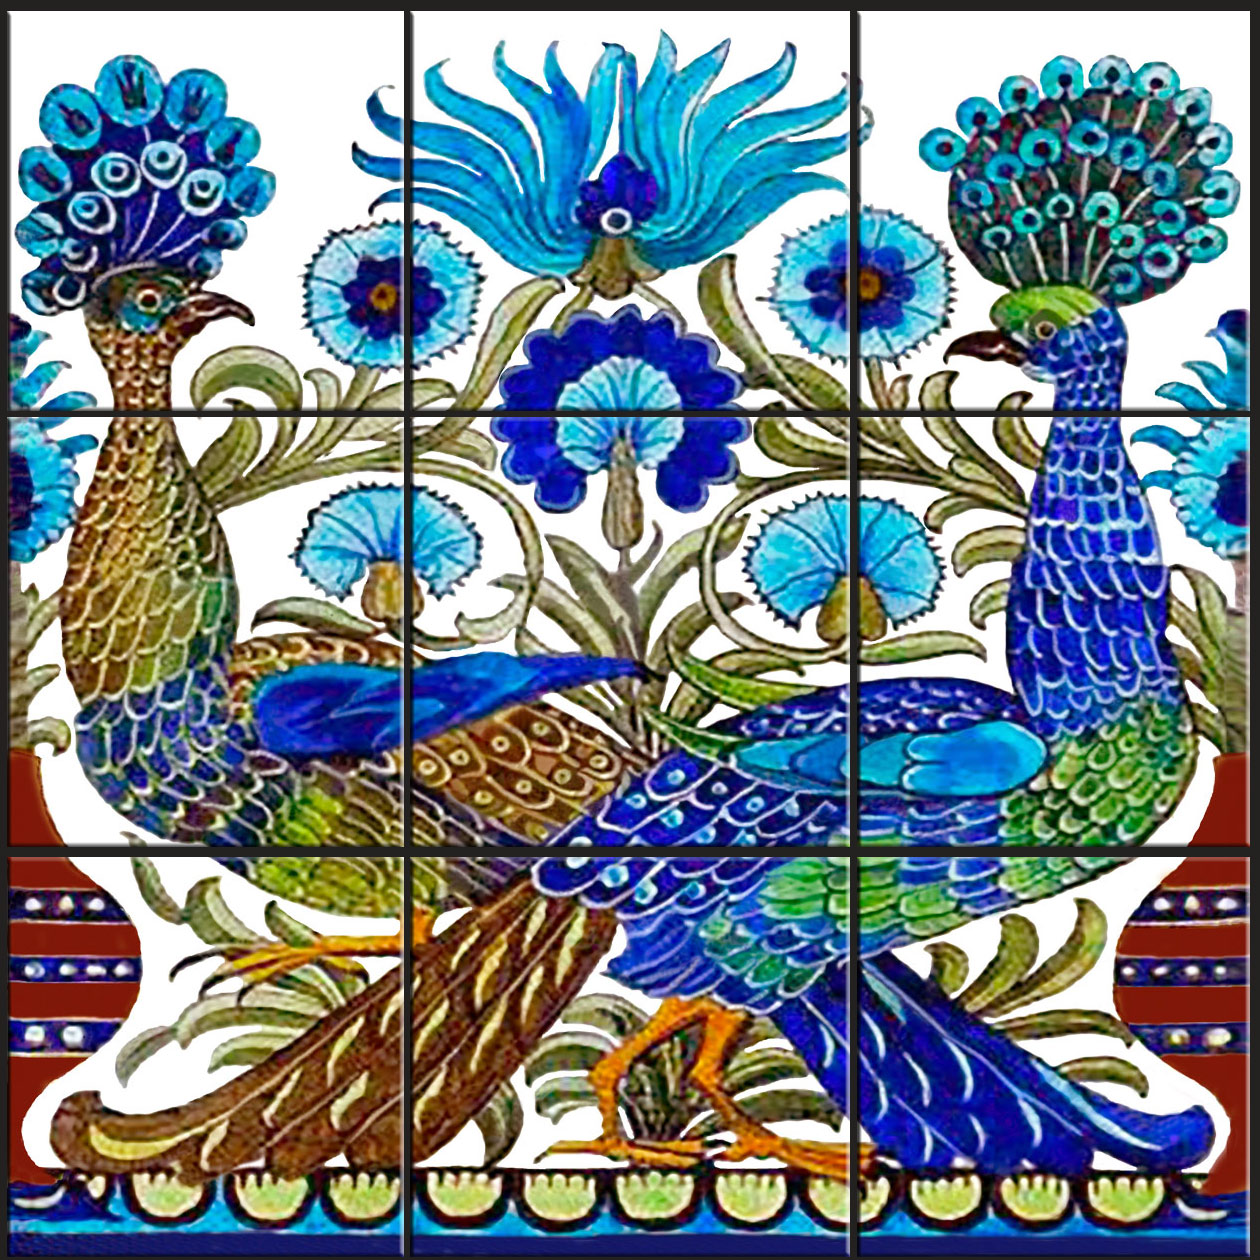 De Morgan Cross-tailed Peacock backsplash